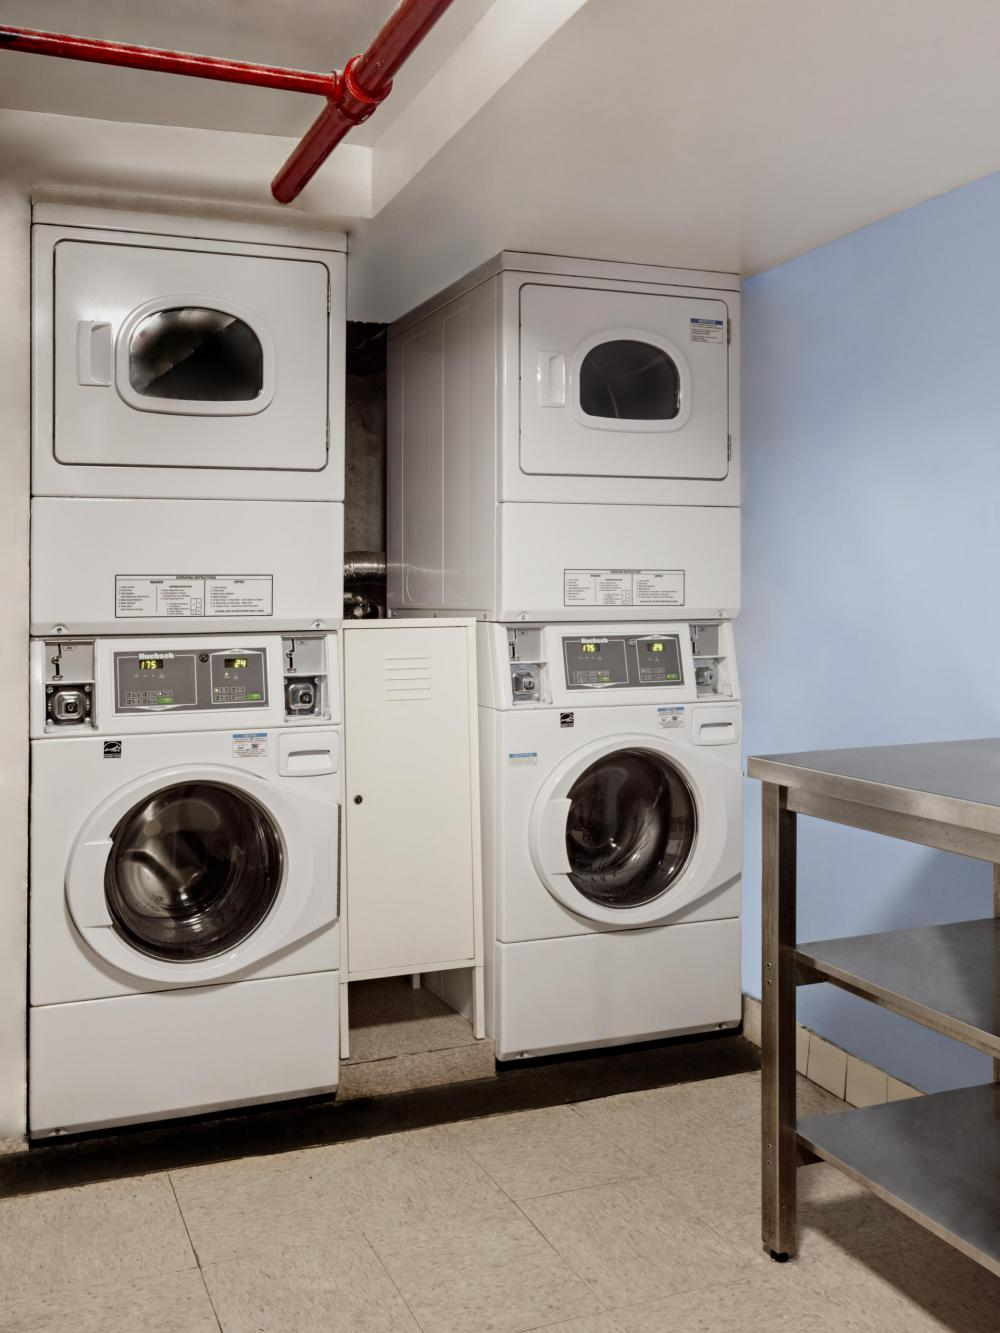 Washer and Dryer are $1 per Load